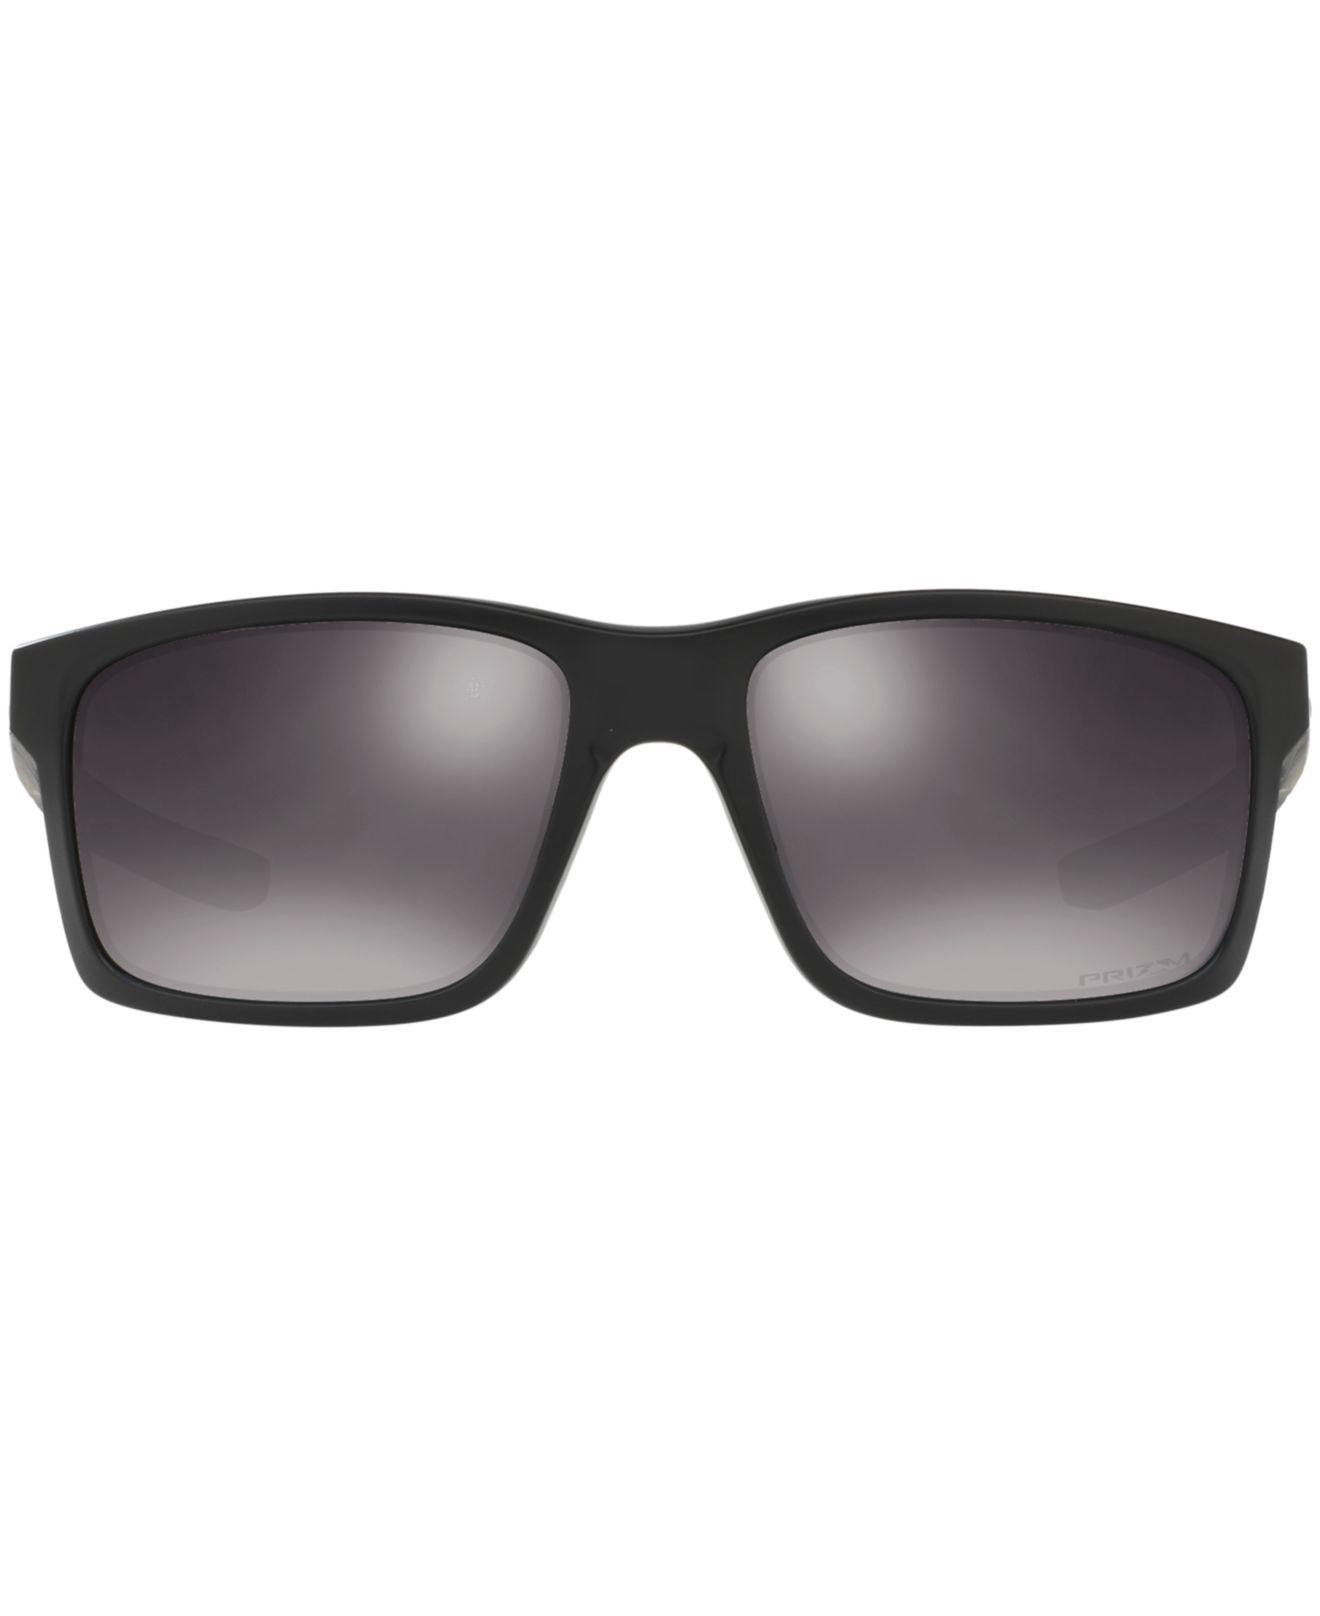 a9f1ab3a87 Lyst - Oakley Polarized Mainlink Prizm Black Iridium Sunglasses ...